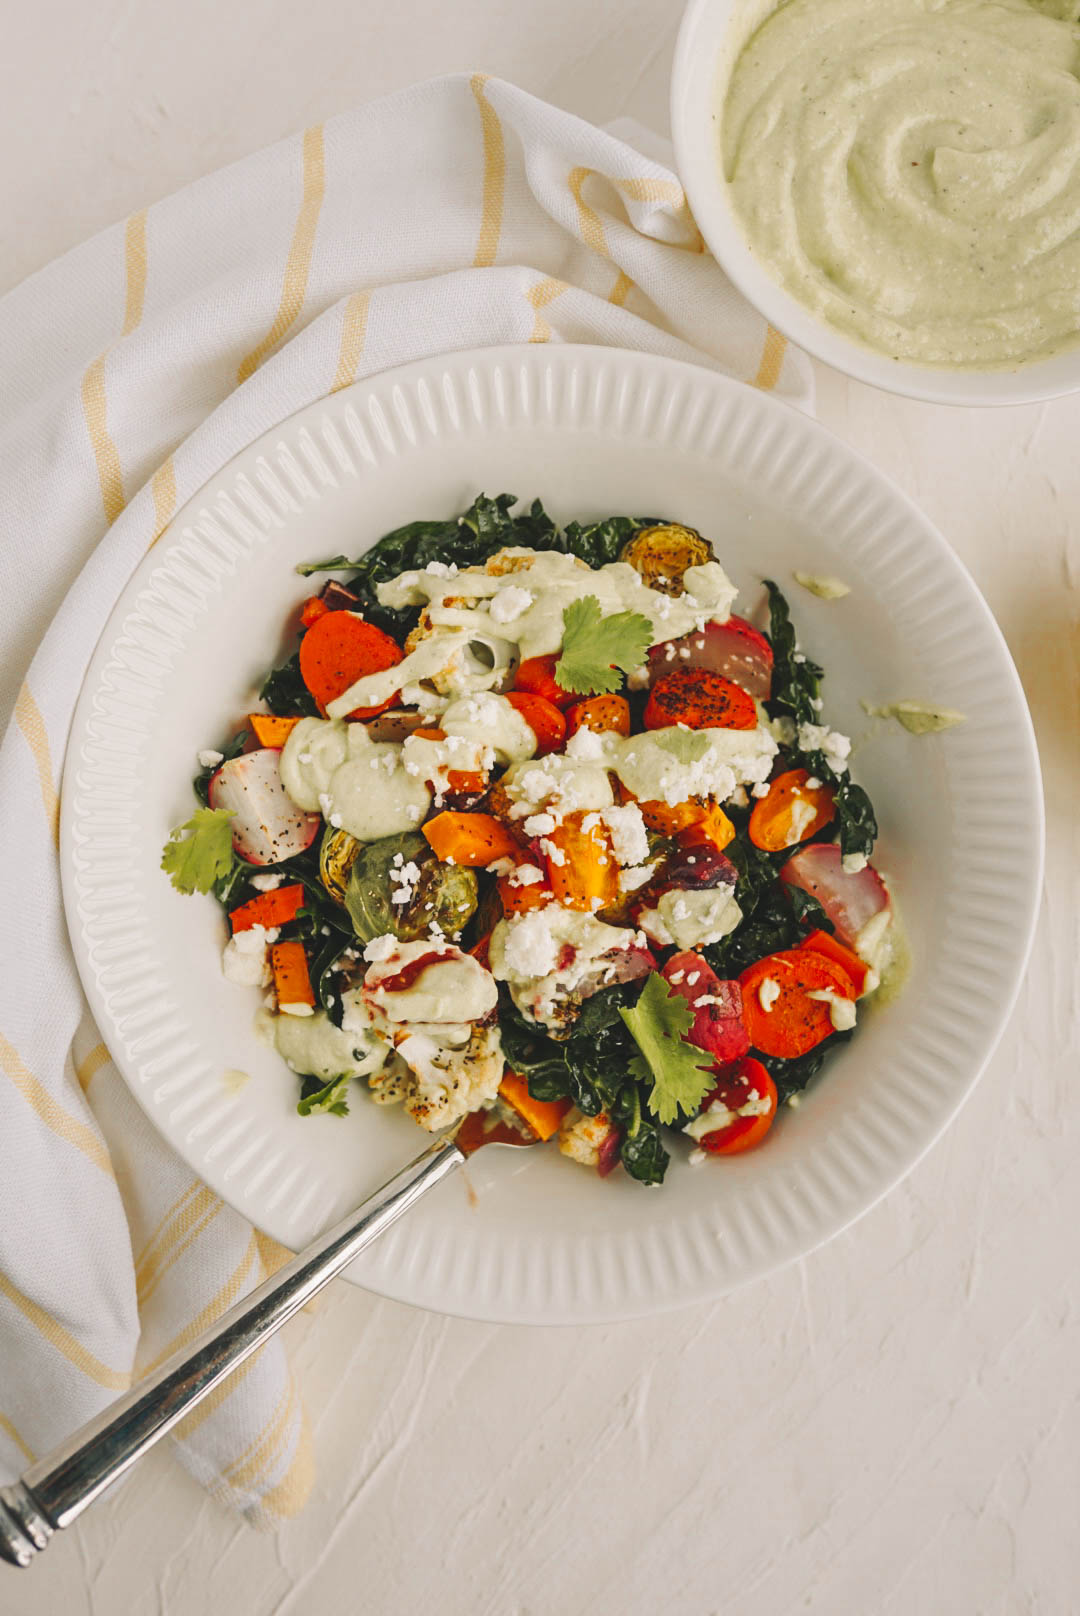 creamy salad dressing with roasted vegetable salad